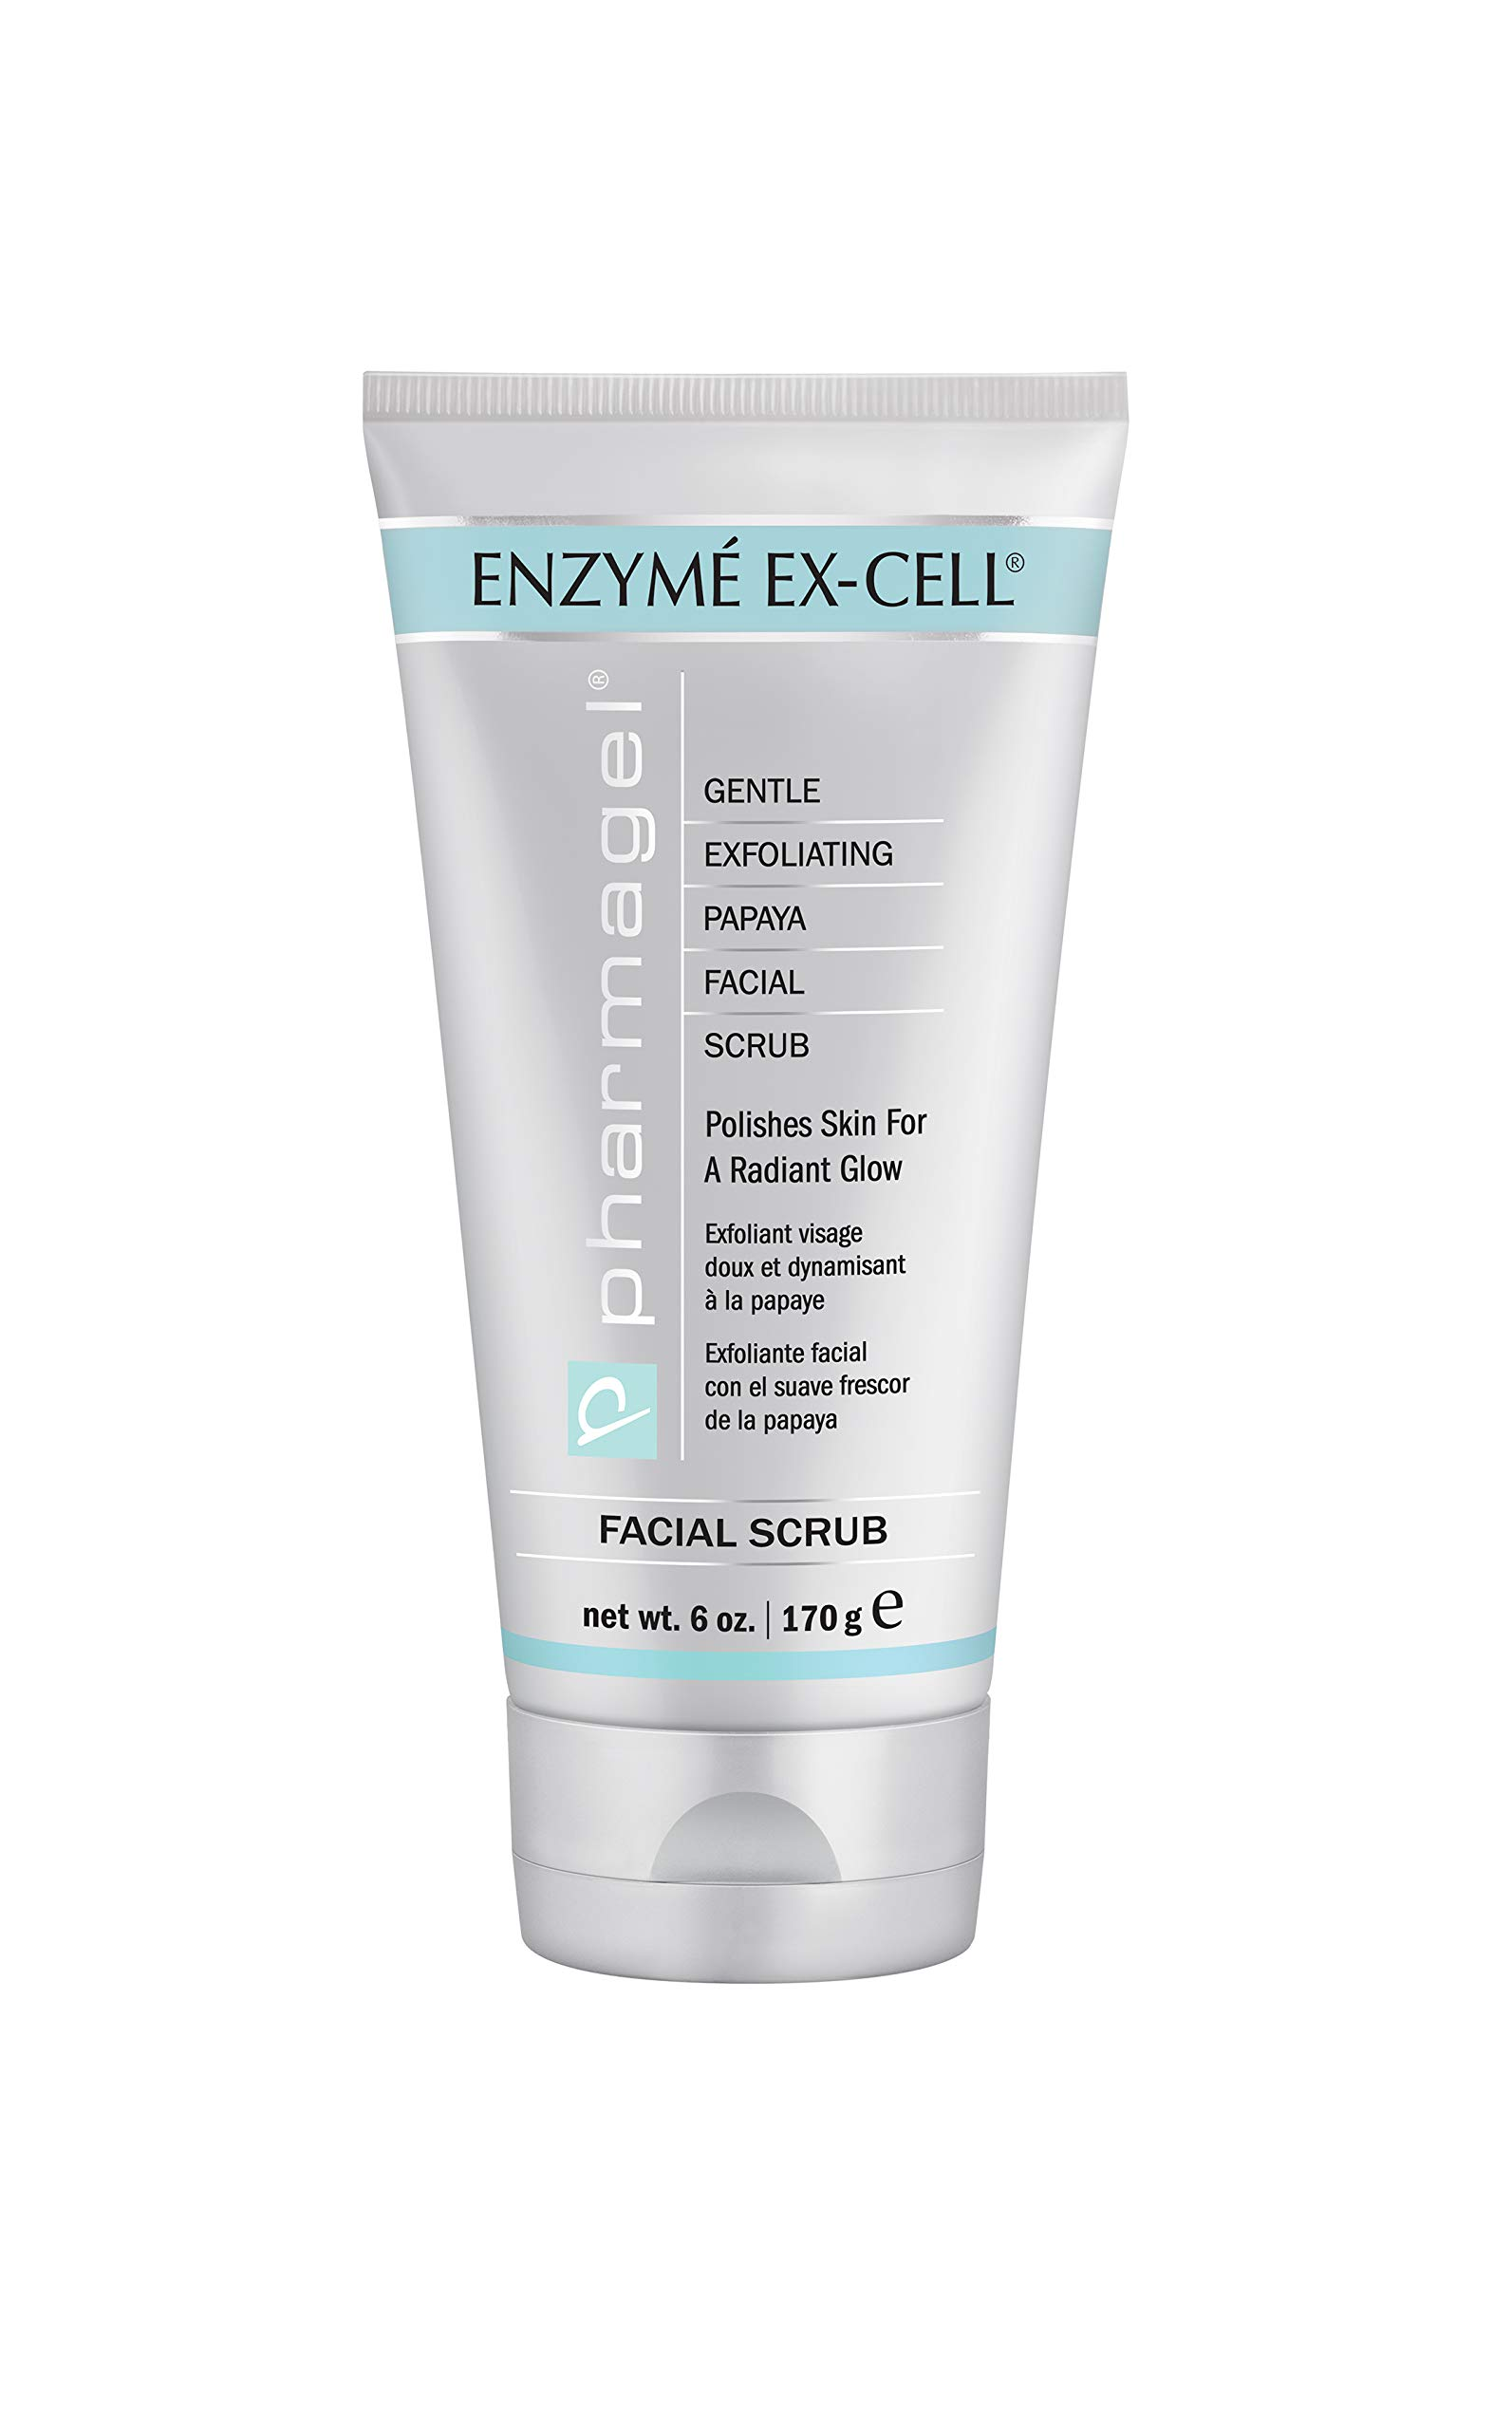 Pharmagel Enzyme Ex-Cell Gentle Exfoliating Facial Scrub | Facial Cleanser to Smooth and Brighten All Skin Types - 6 oz by Pharmagel